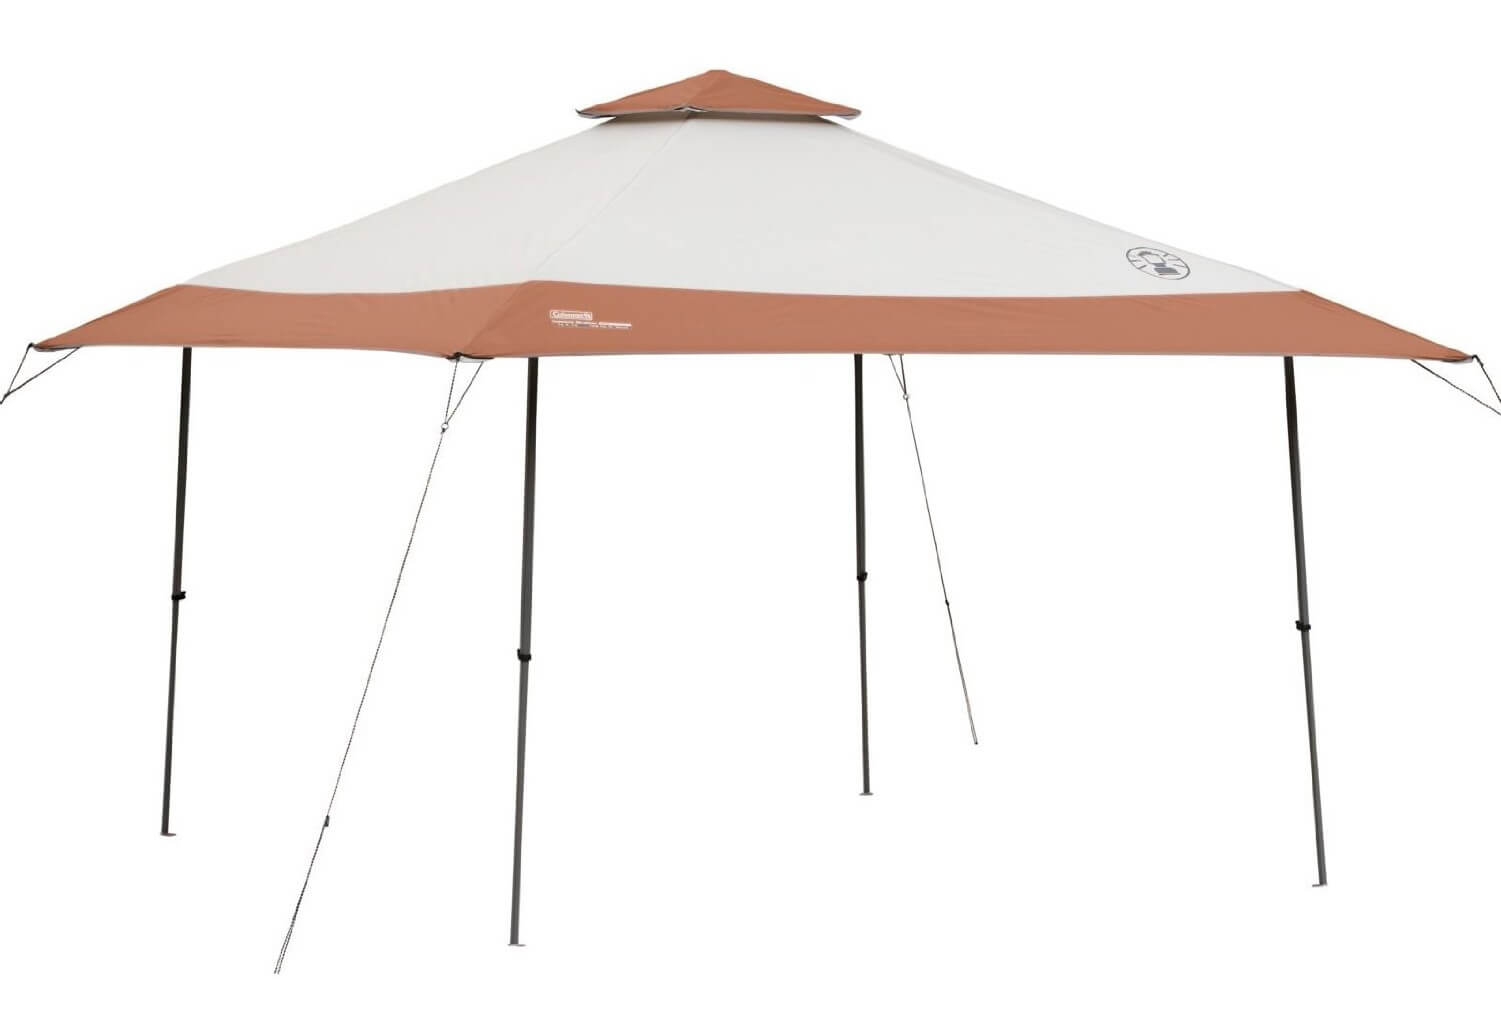 Best Beach Canopy of 2019 - Reviews & Buying Guide